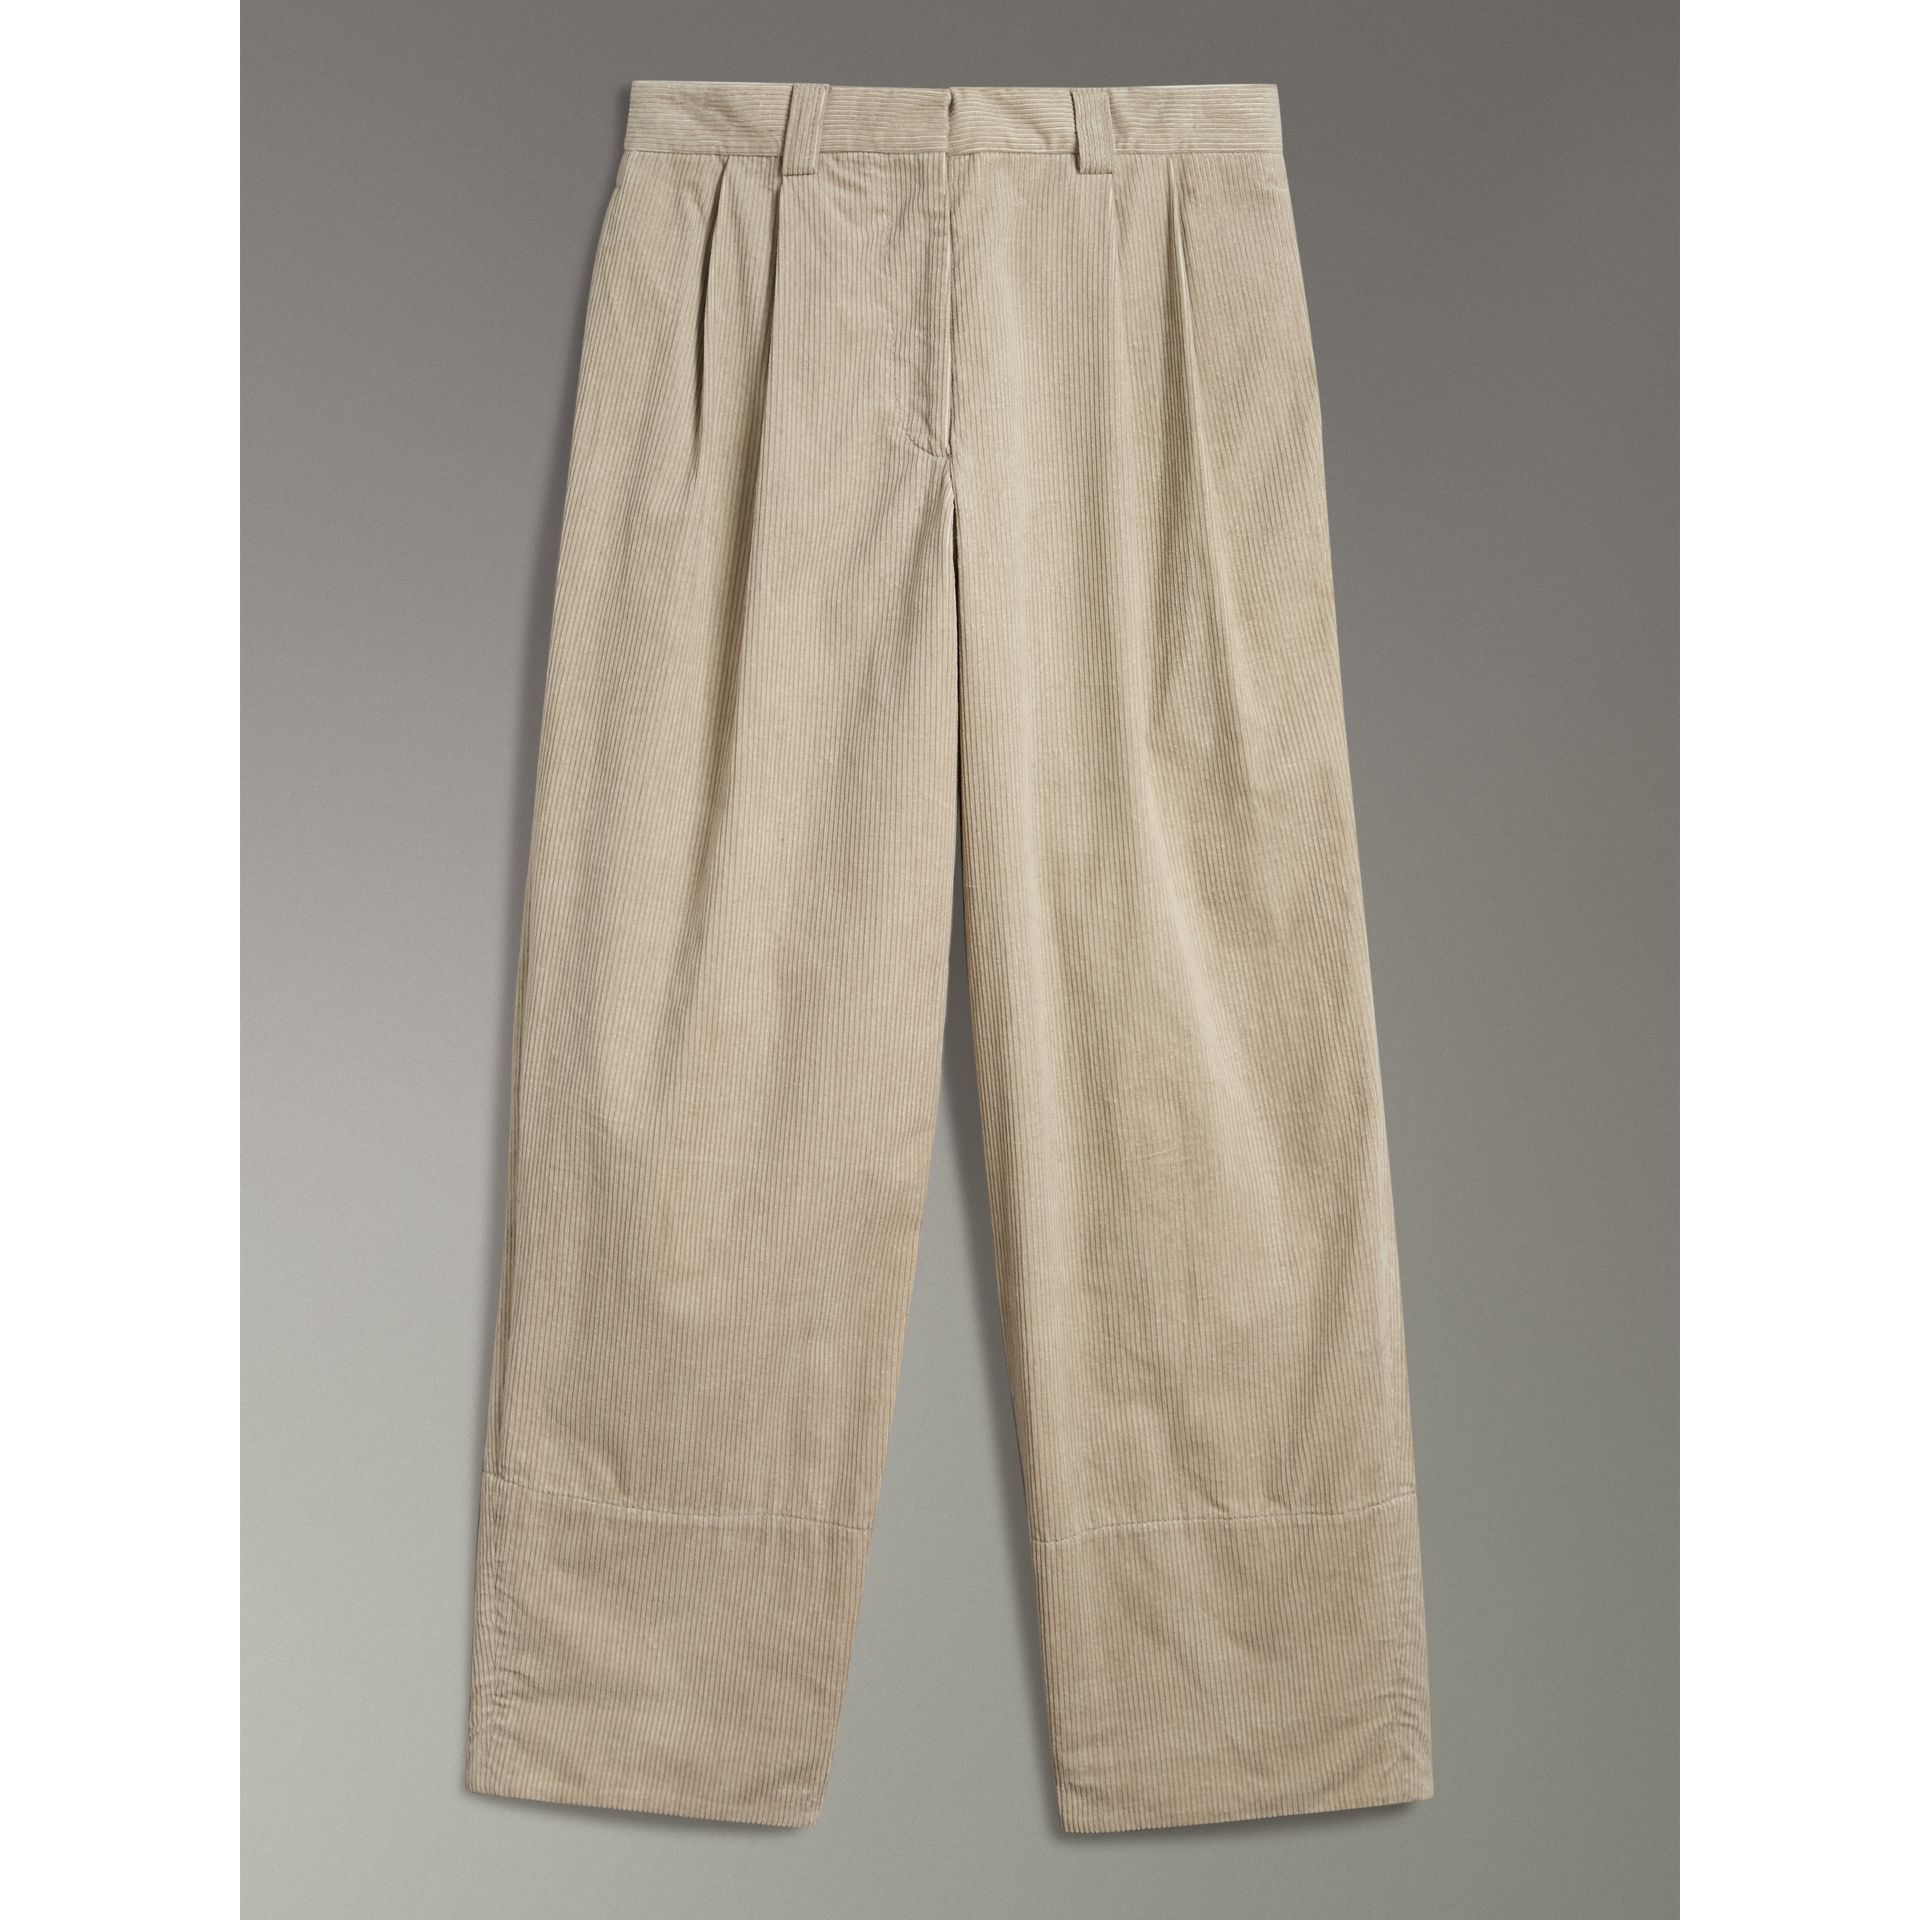 Roll-up Cuff Cotton Corduroy Trousers in Stone - Women | Burberry Canada - gallery image 3